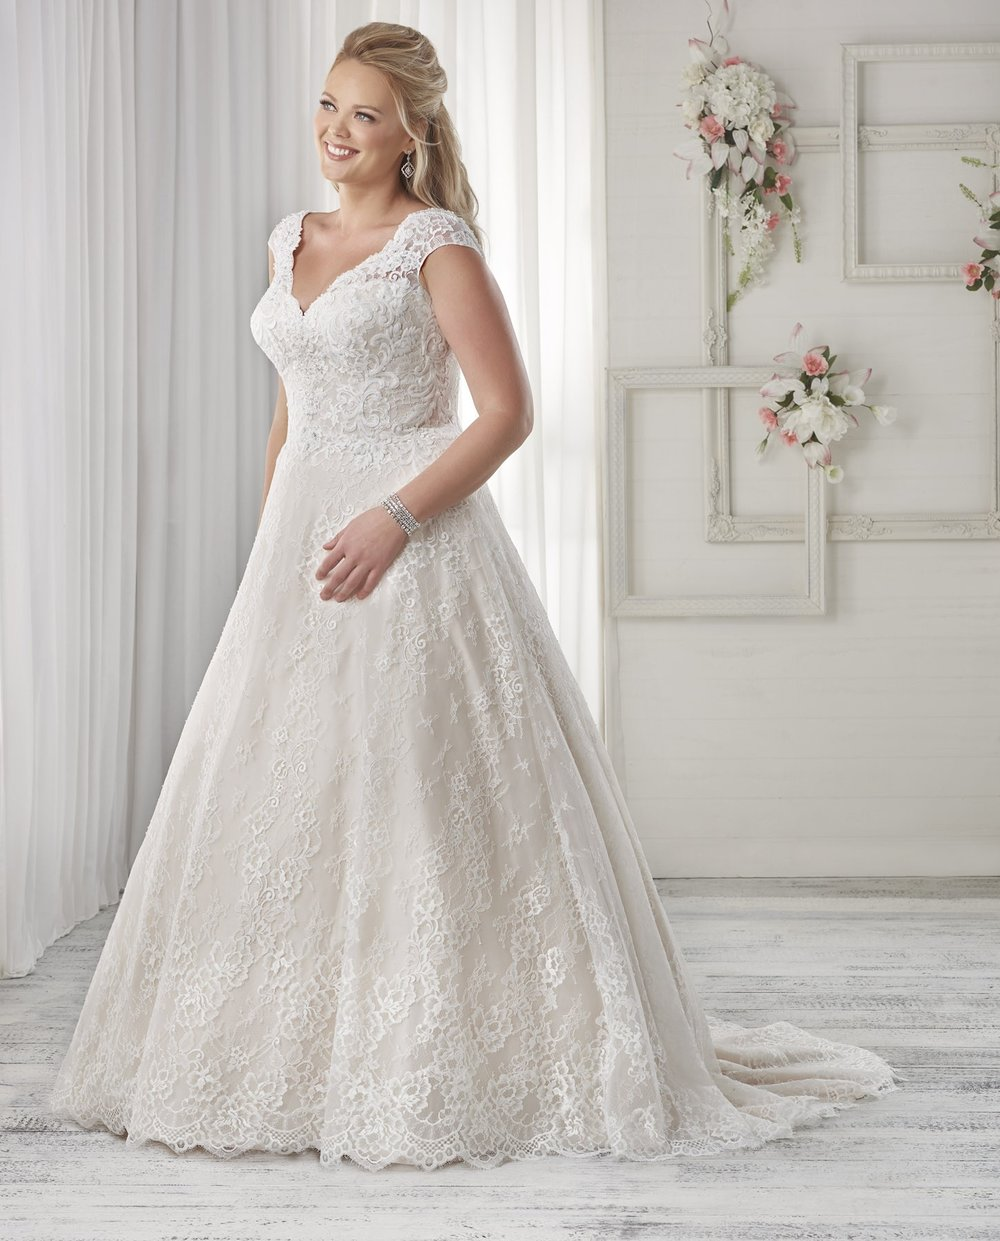 BonnyBridal-BridesbyYoung-PlusSizeWeddingDress-1601.jpg